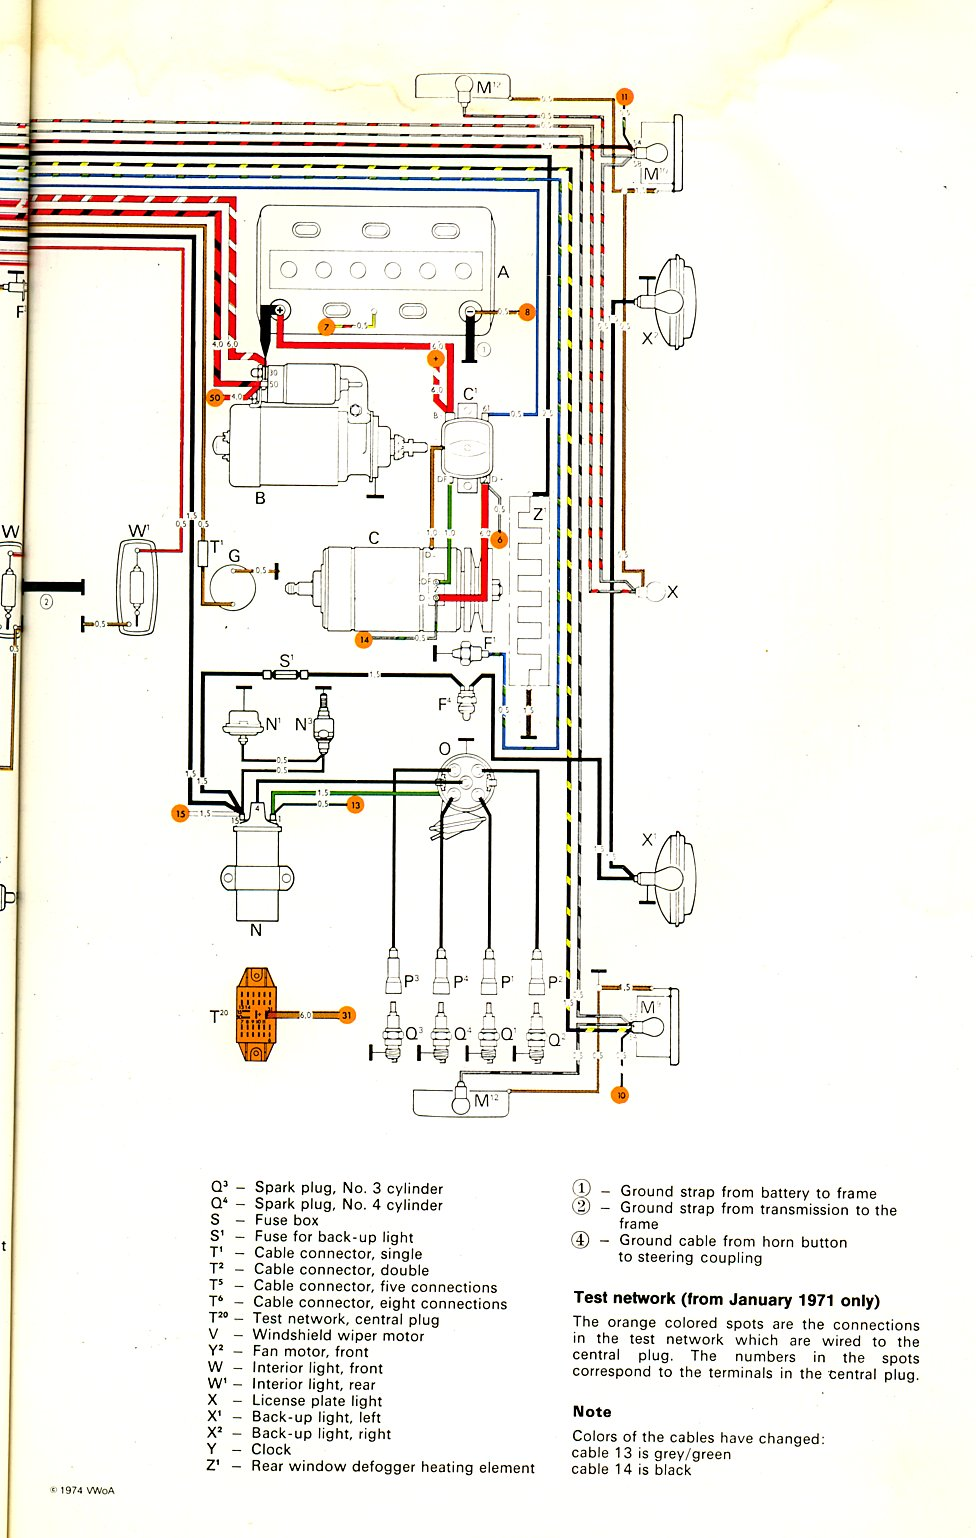 Type 2 Wiring Diagrams 1968 Chrysler Diagram